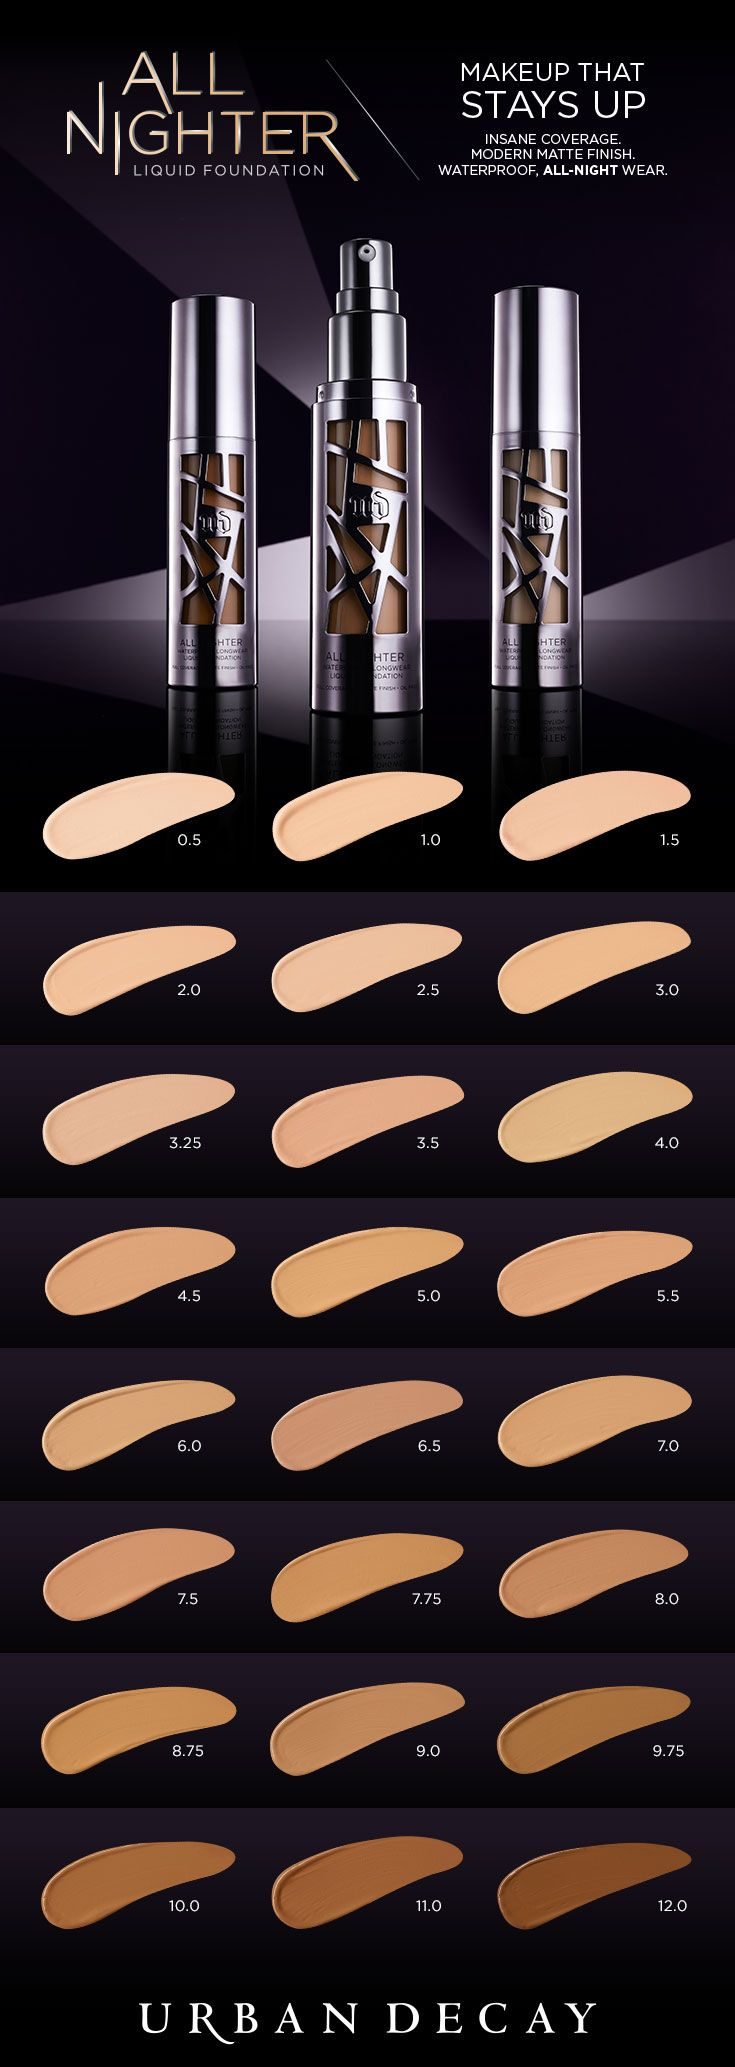 All Nighter Liquid Foundation With Images Makeup Foundation